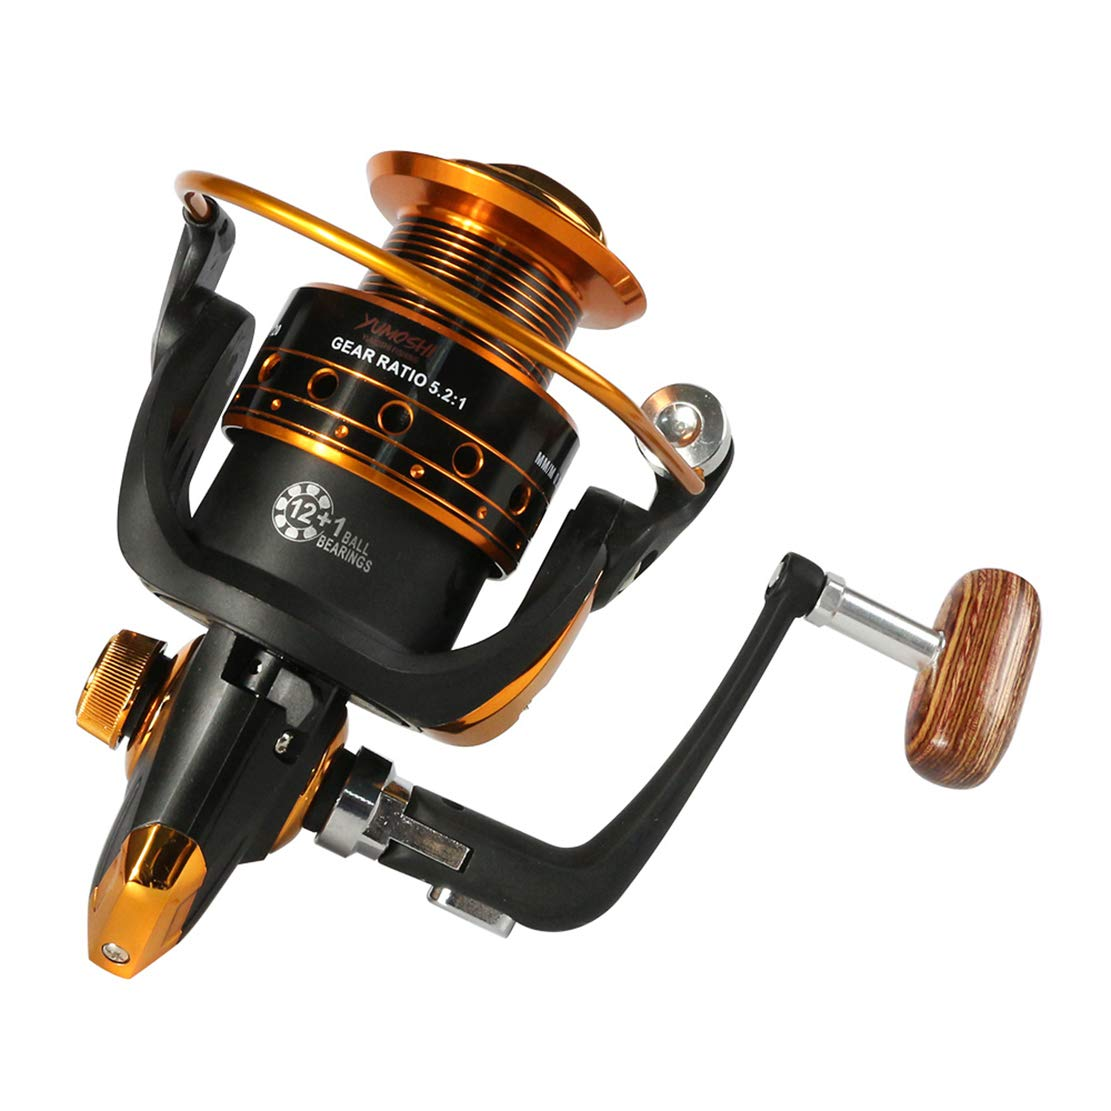 Mele & Co Spinning Pesca Carrete 12BB + 1 AX Bx 500-9000 Serie ...